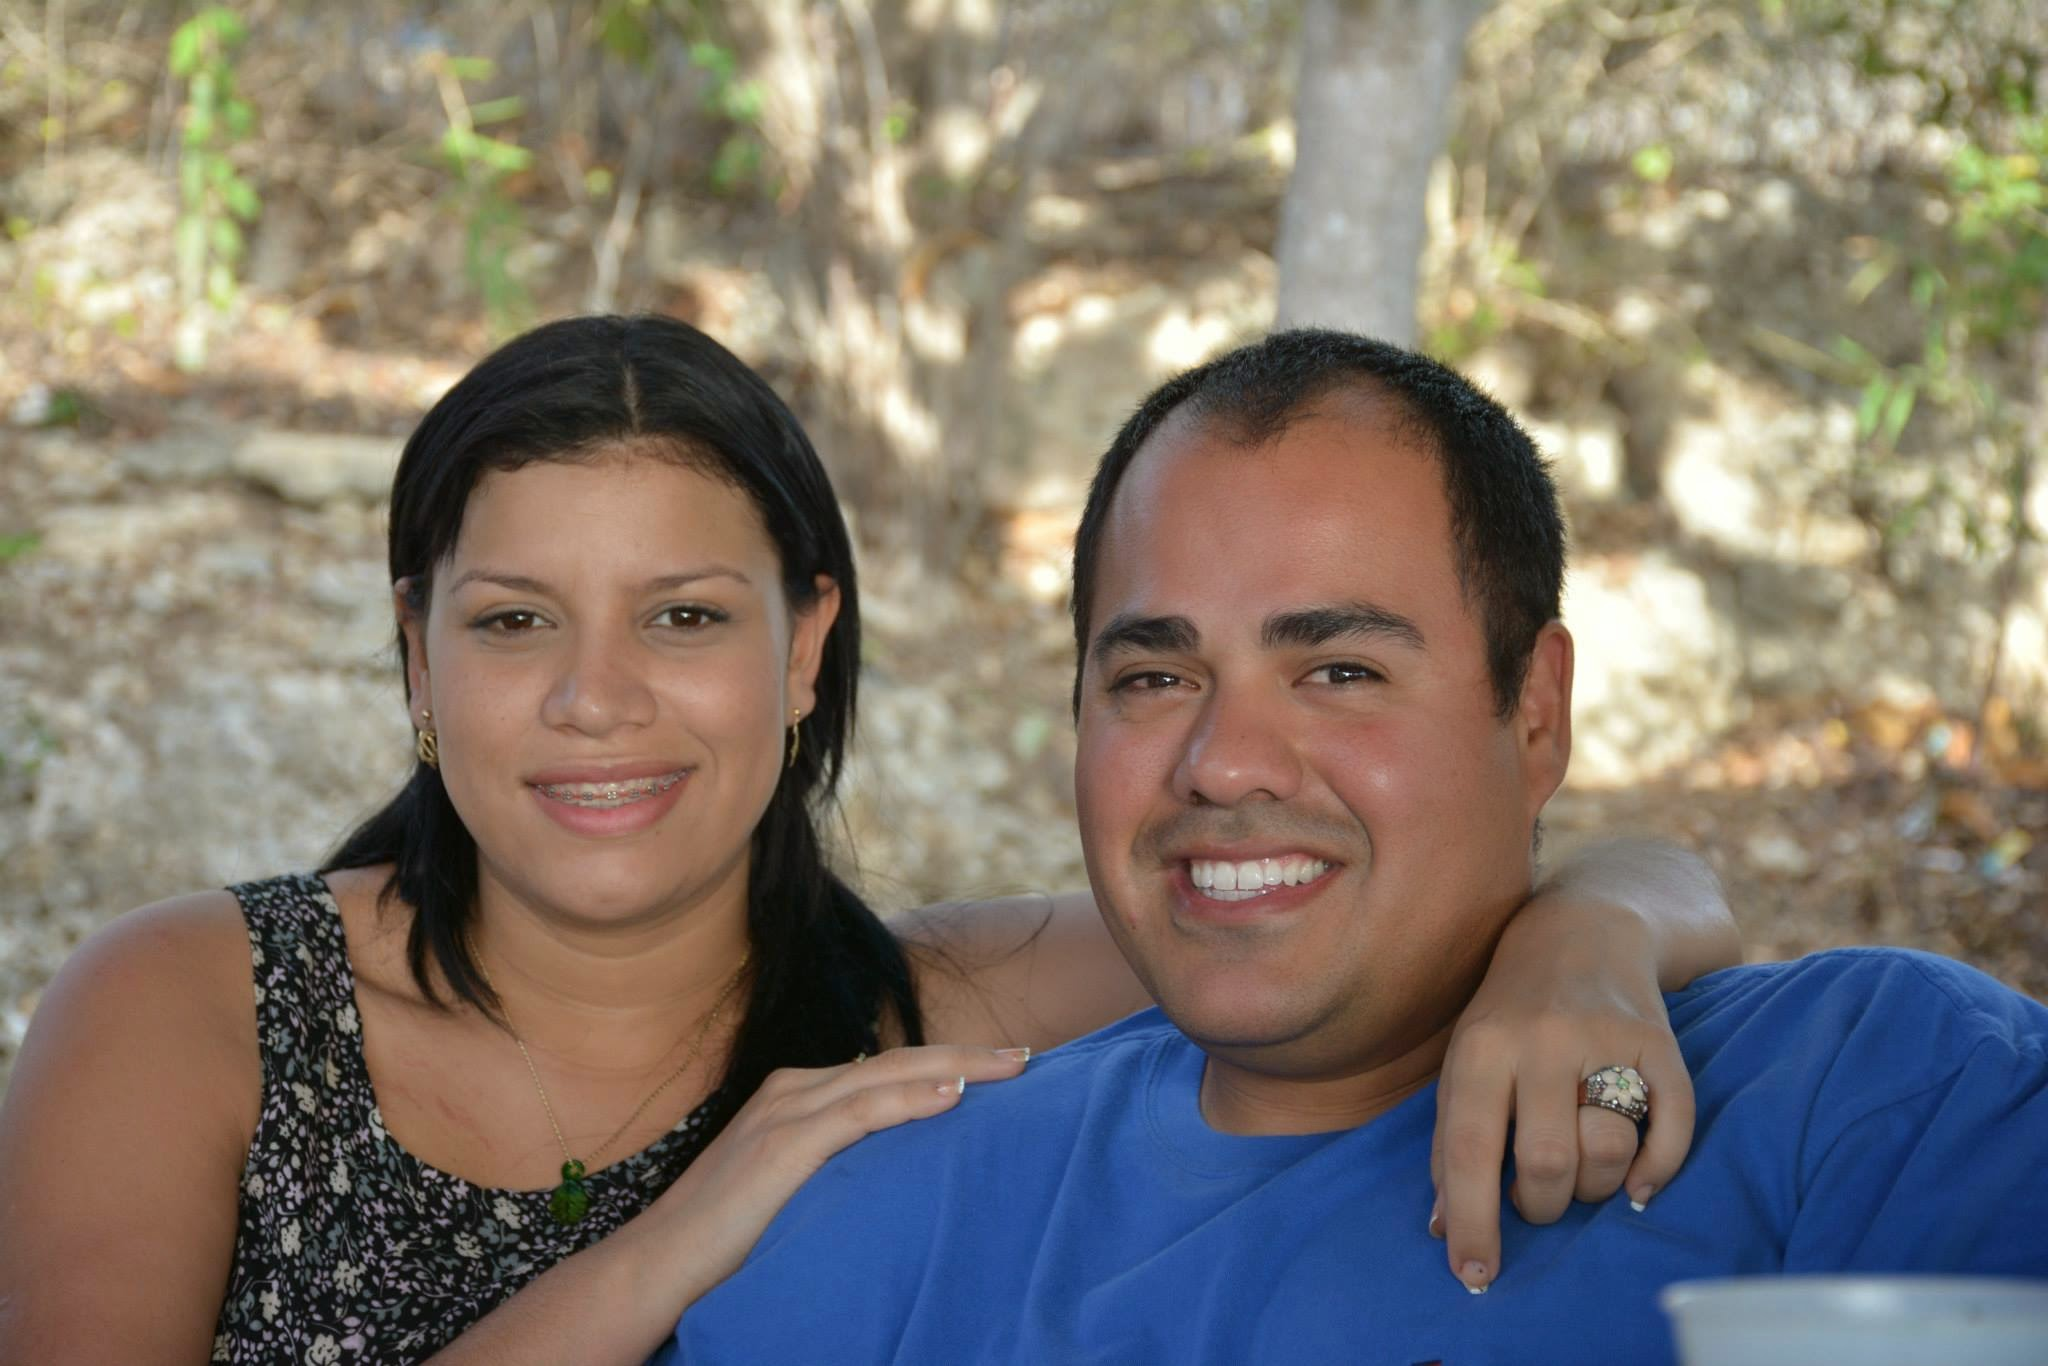 Image 1 of Carlos and Gabby's Proposal on the Island of Curaçao